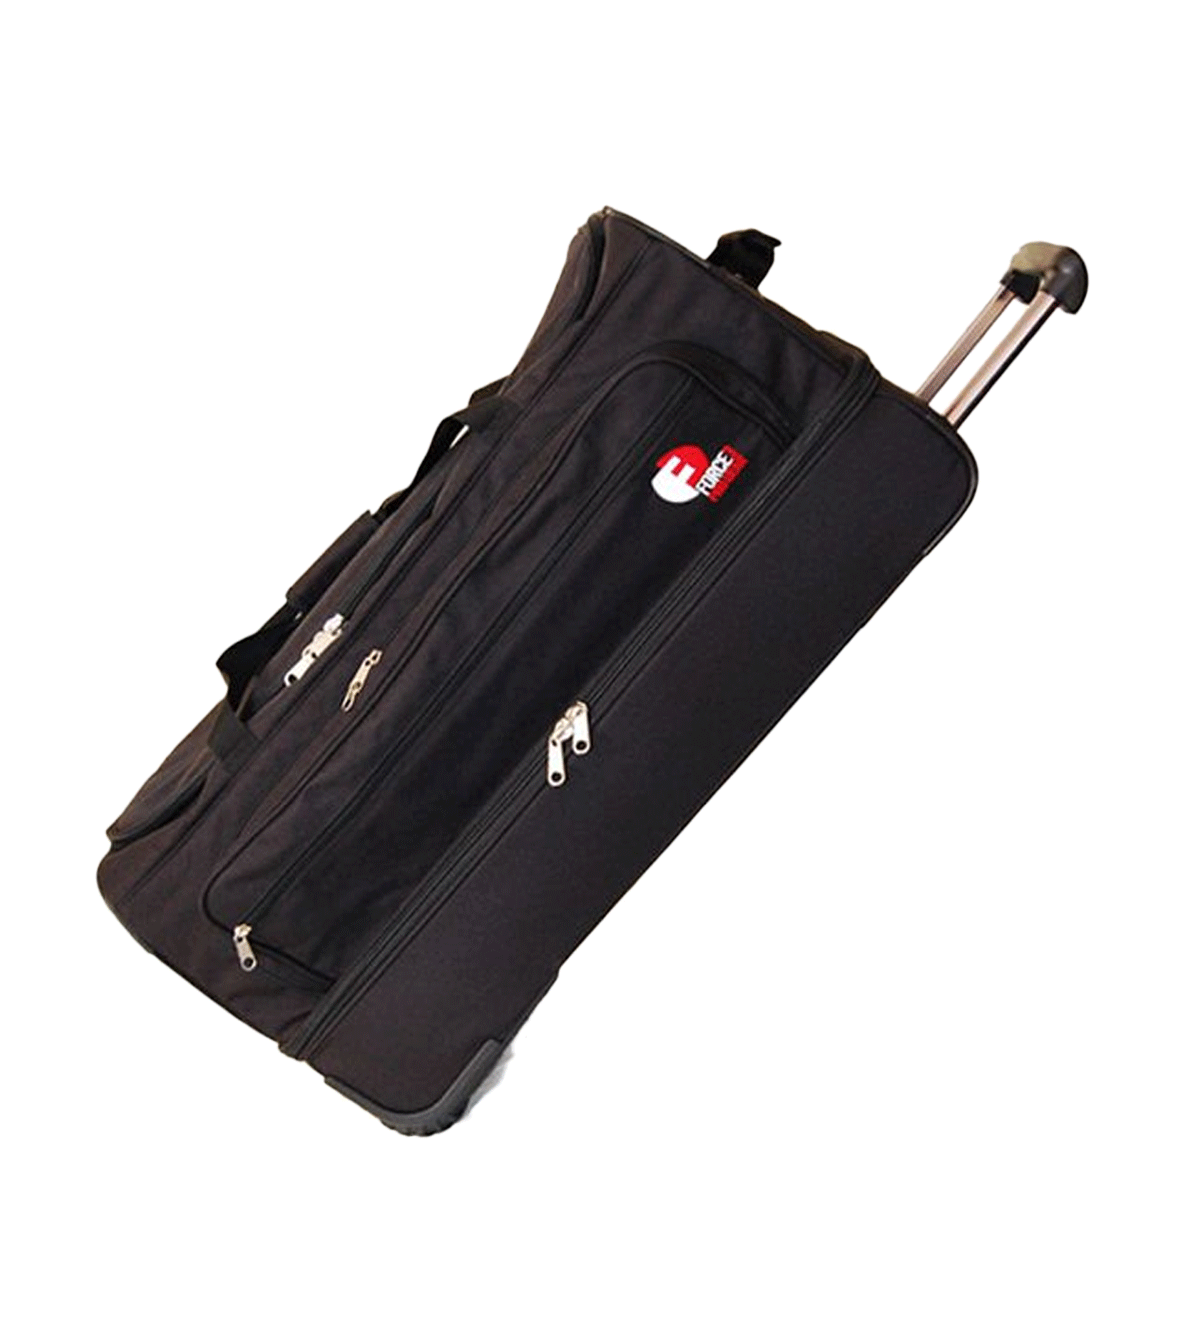 Force 3 Gear Bag